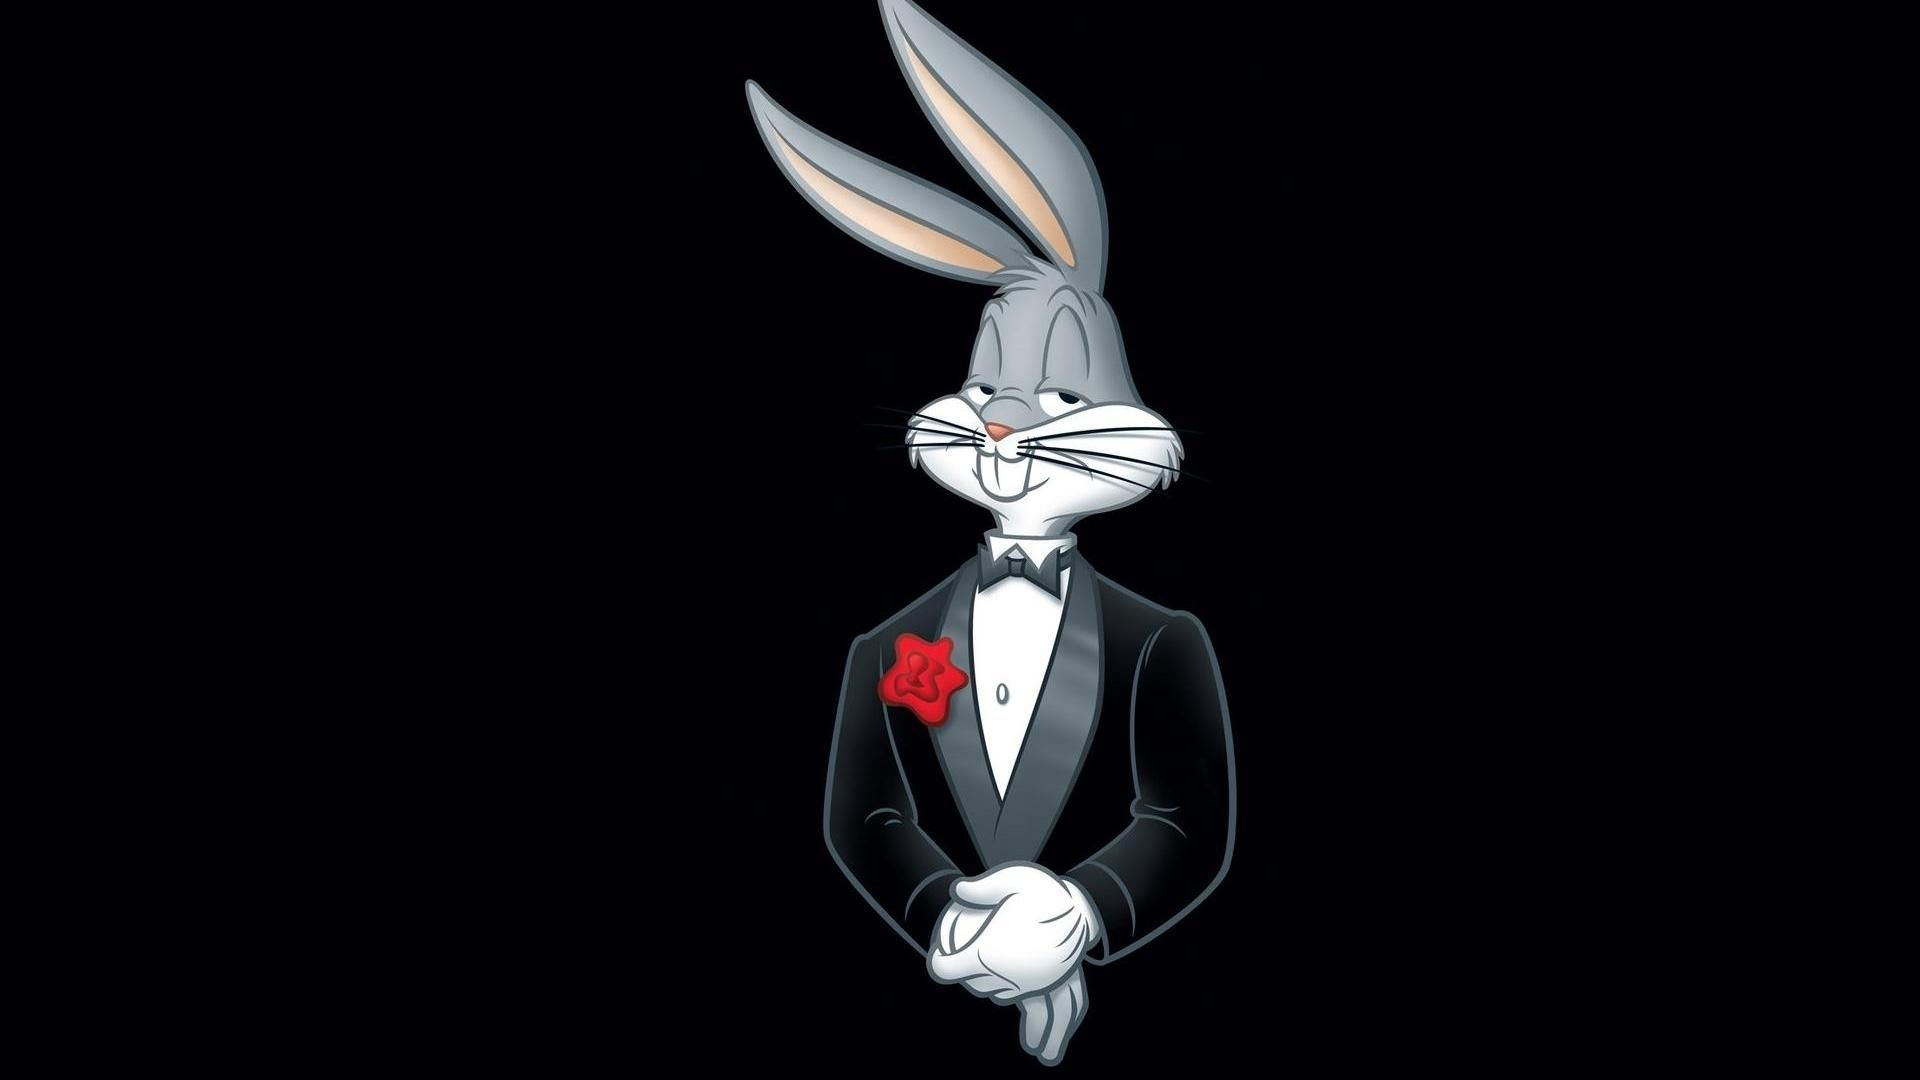 Add Flair To Your Room With Bugs Bunny wallpaper